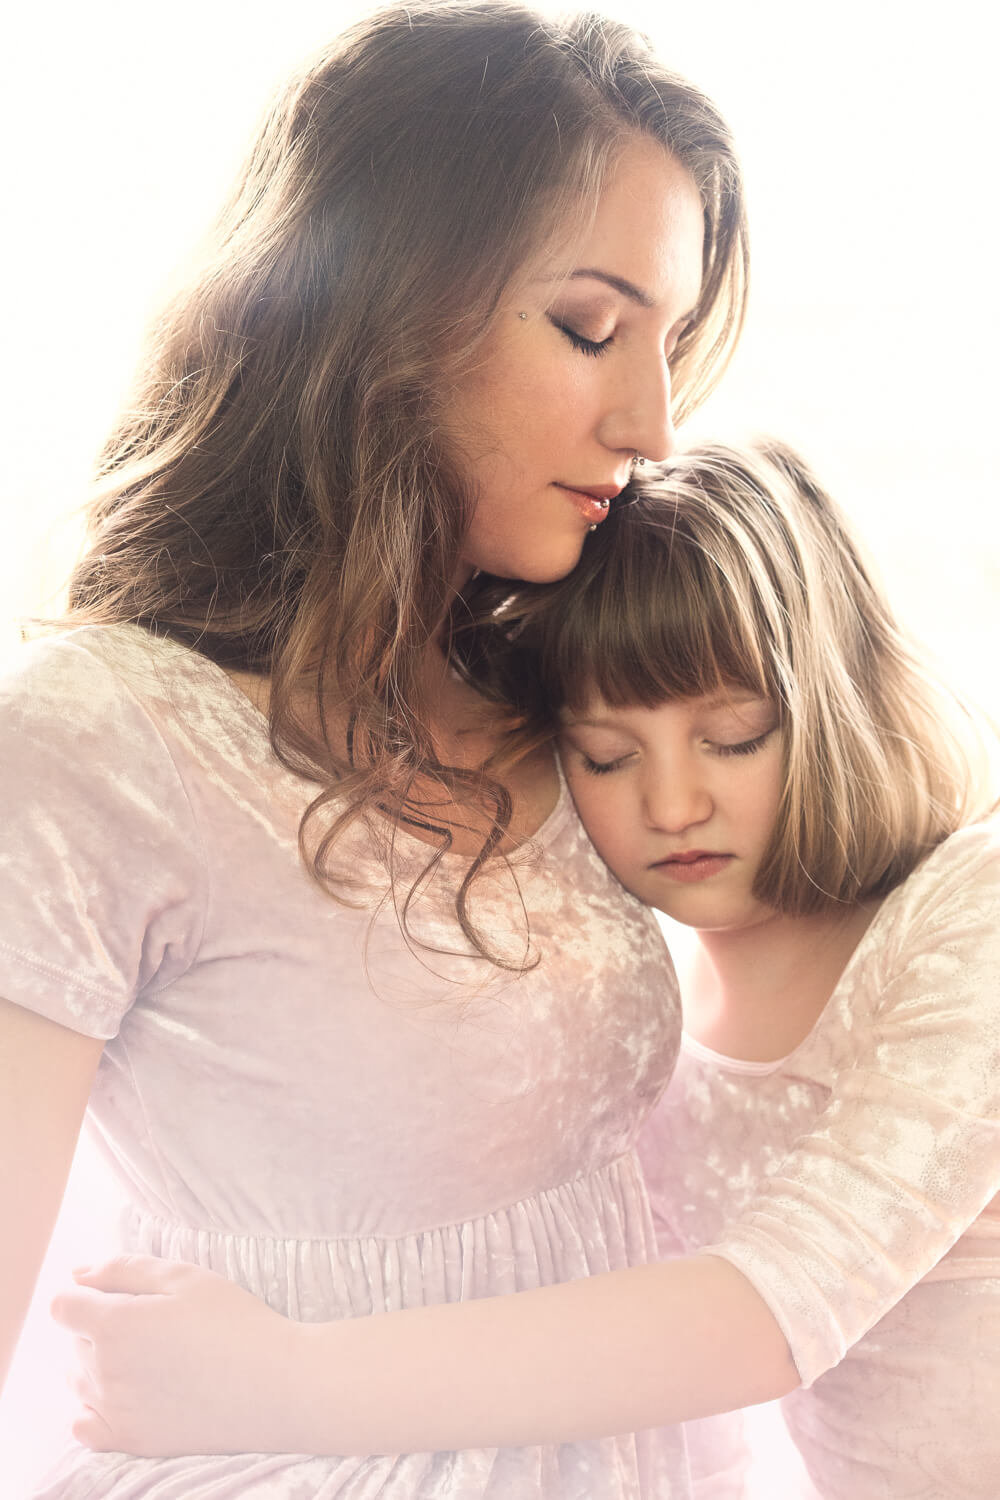 Calm moment for mother and daugther in mother daughter photoshoot